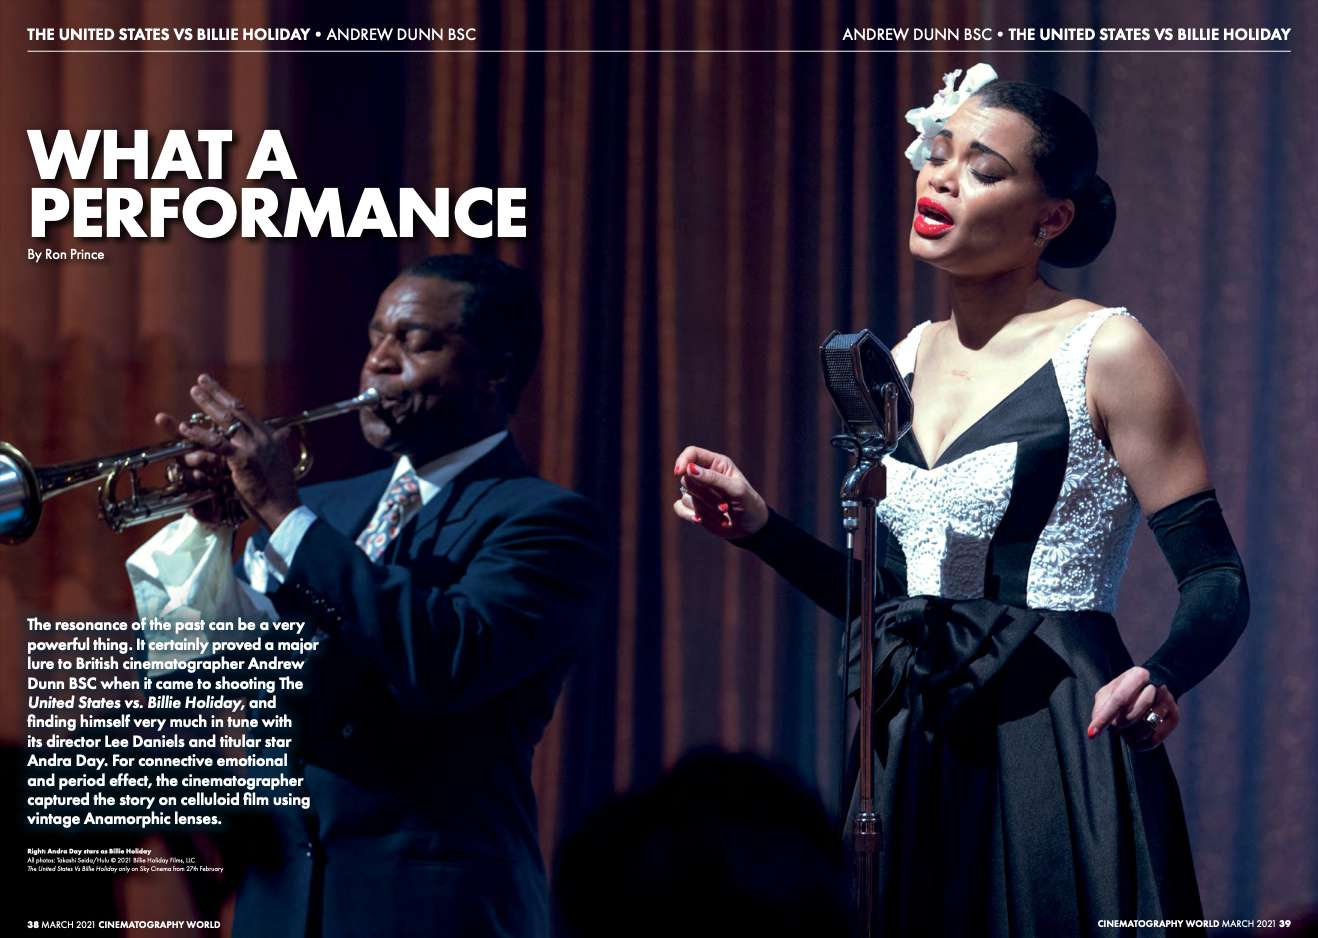 BILLIE HOLIDAY FEATURE IN CINEMATOGRAPHY WORLD